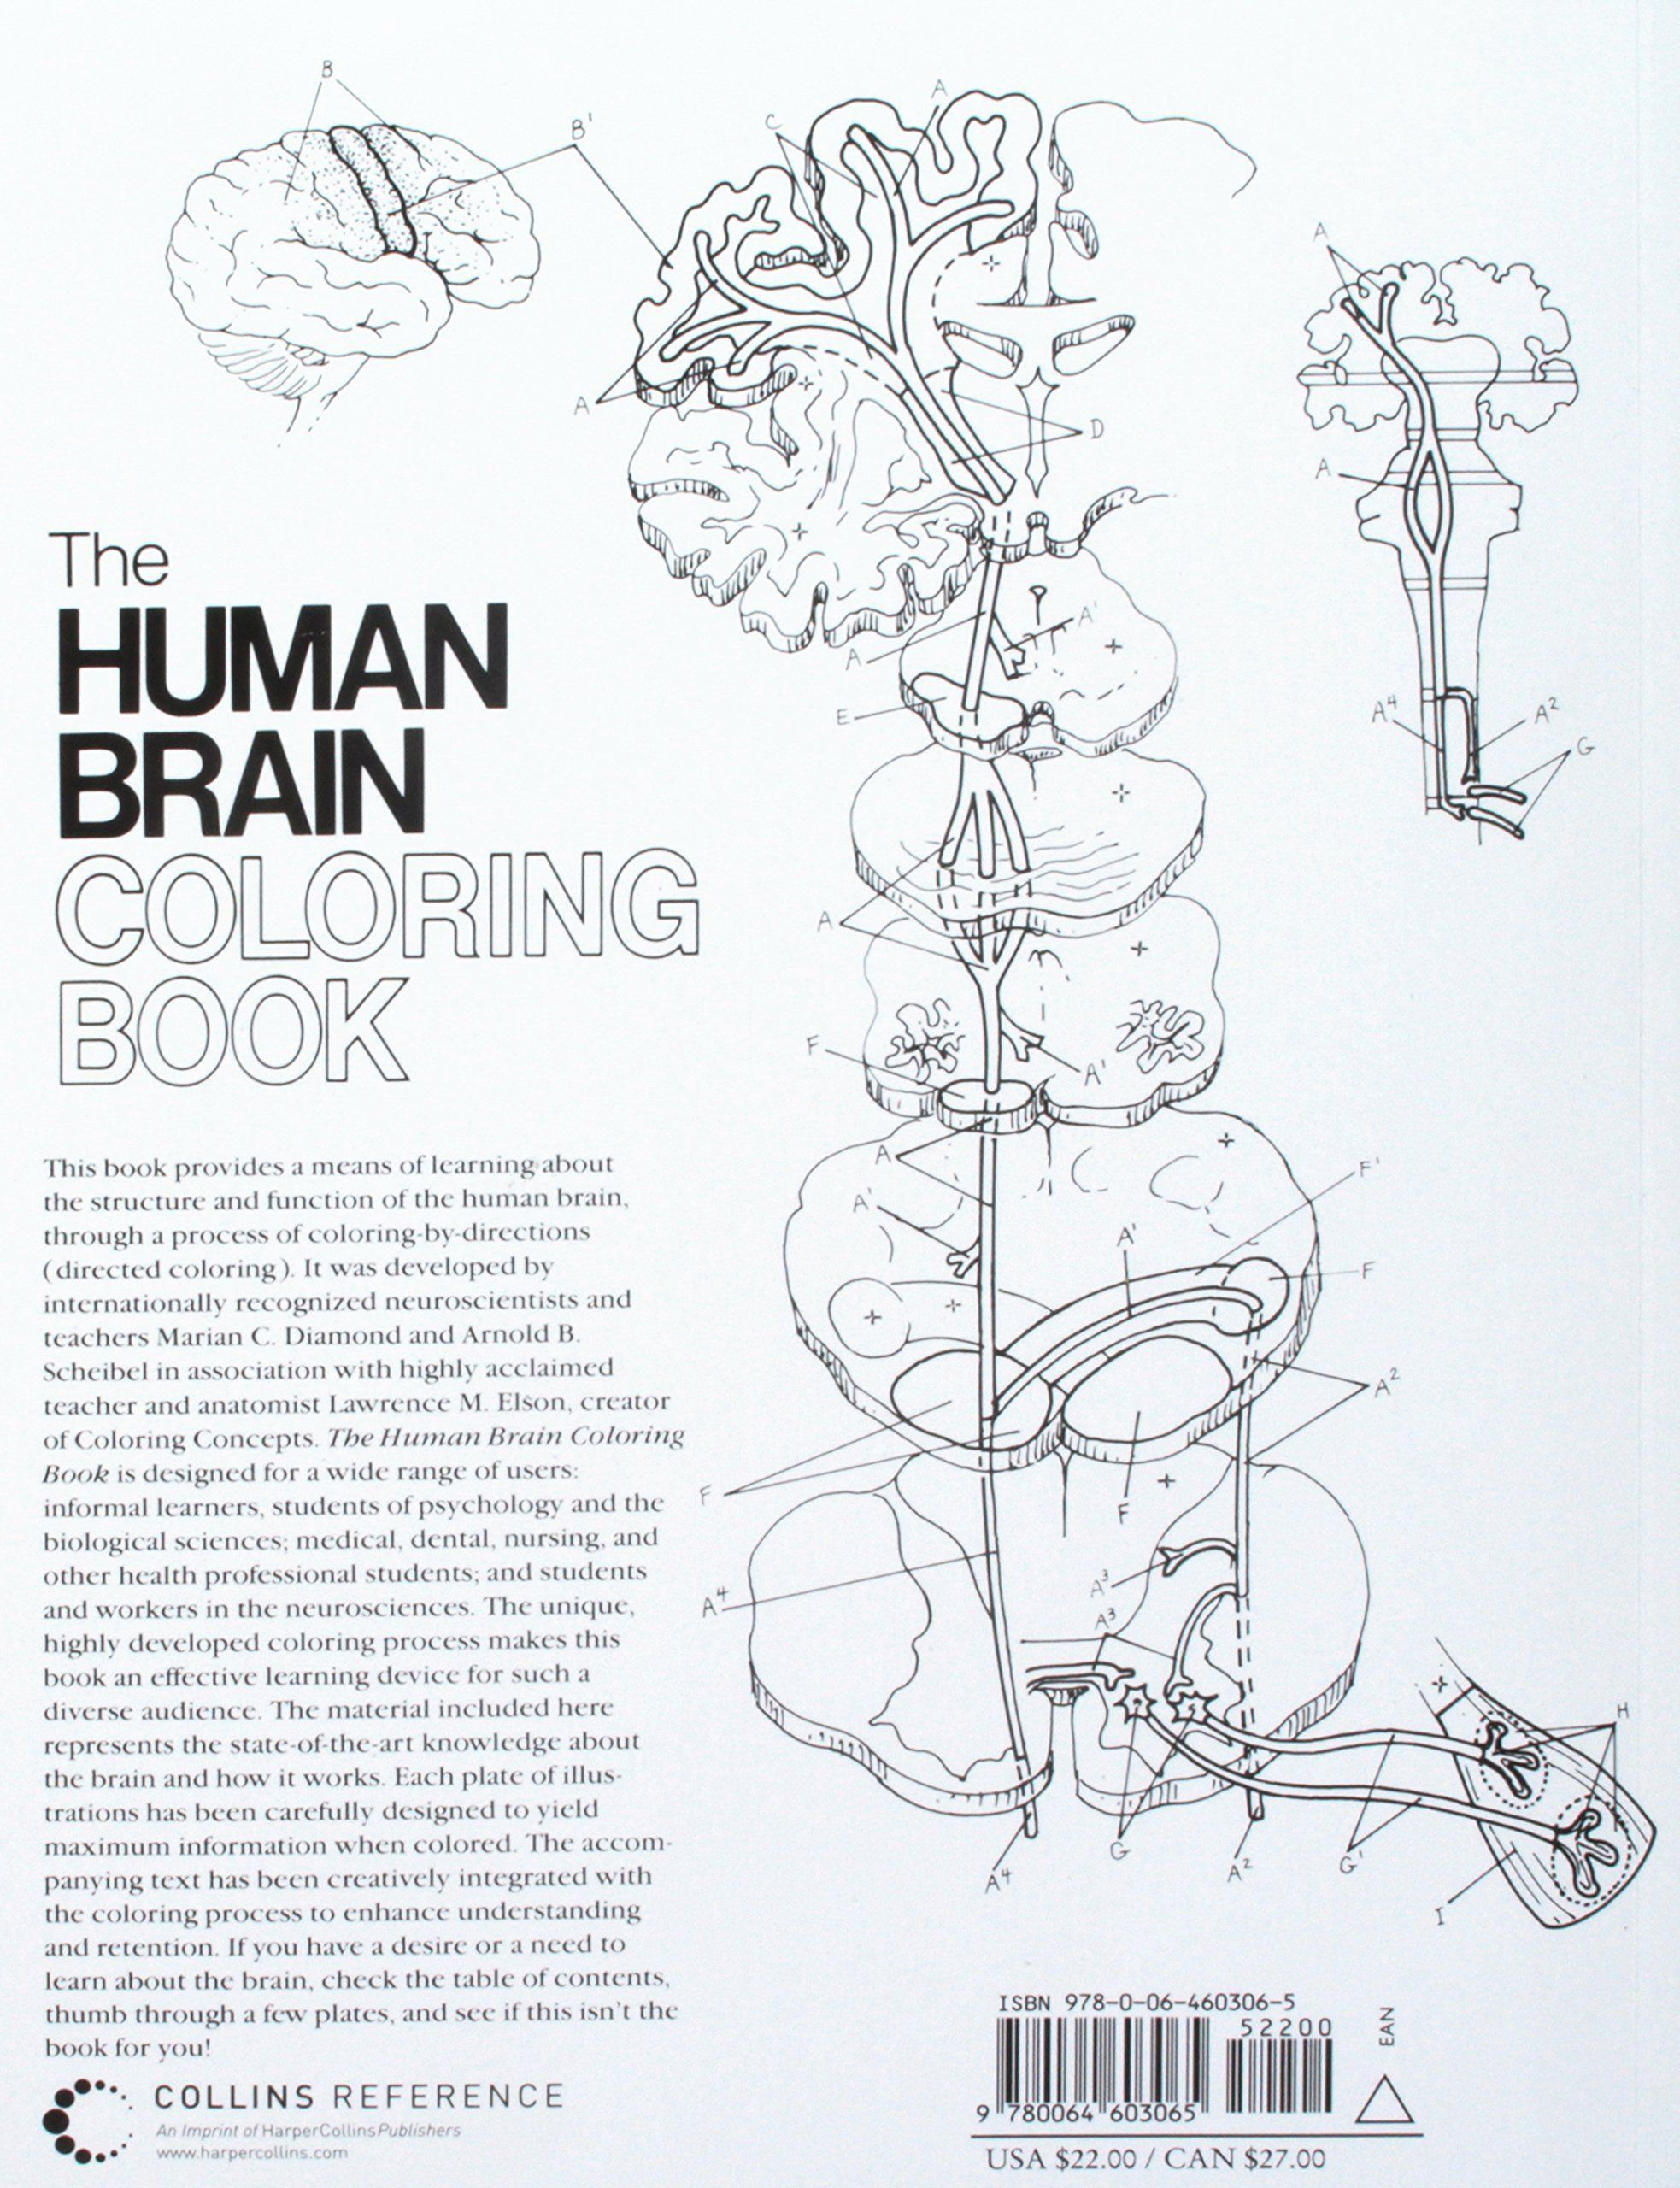 Human Brain Coloring Book Best Of The Human Brain Coloring Book Coloring Concepts Series Ad Coloring Books Anatomy Coloring Book Coloring Pages